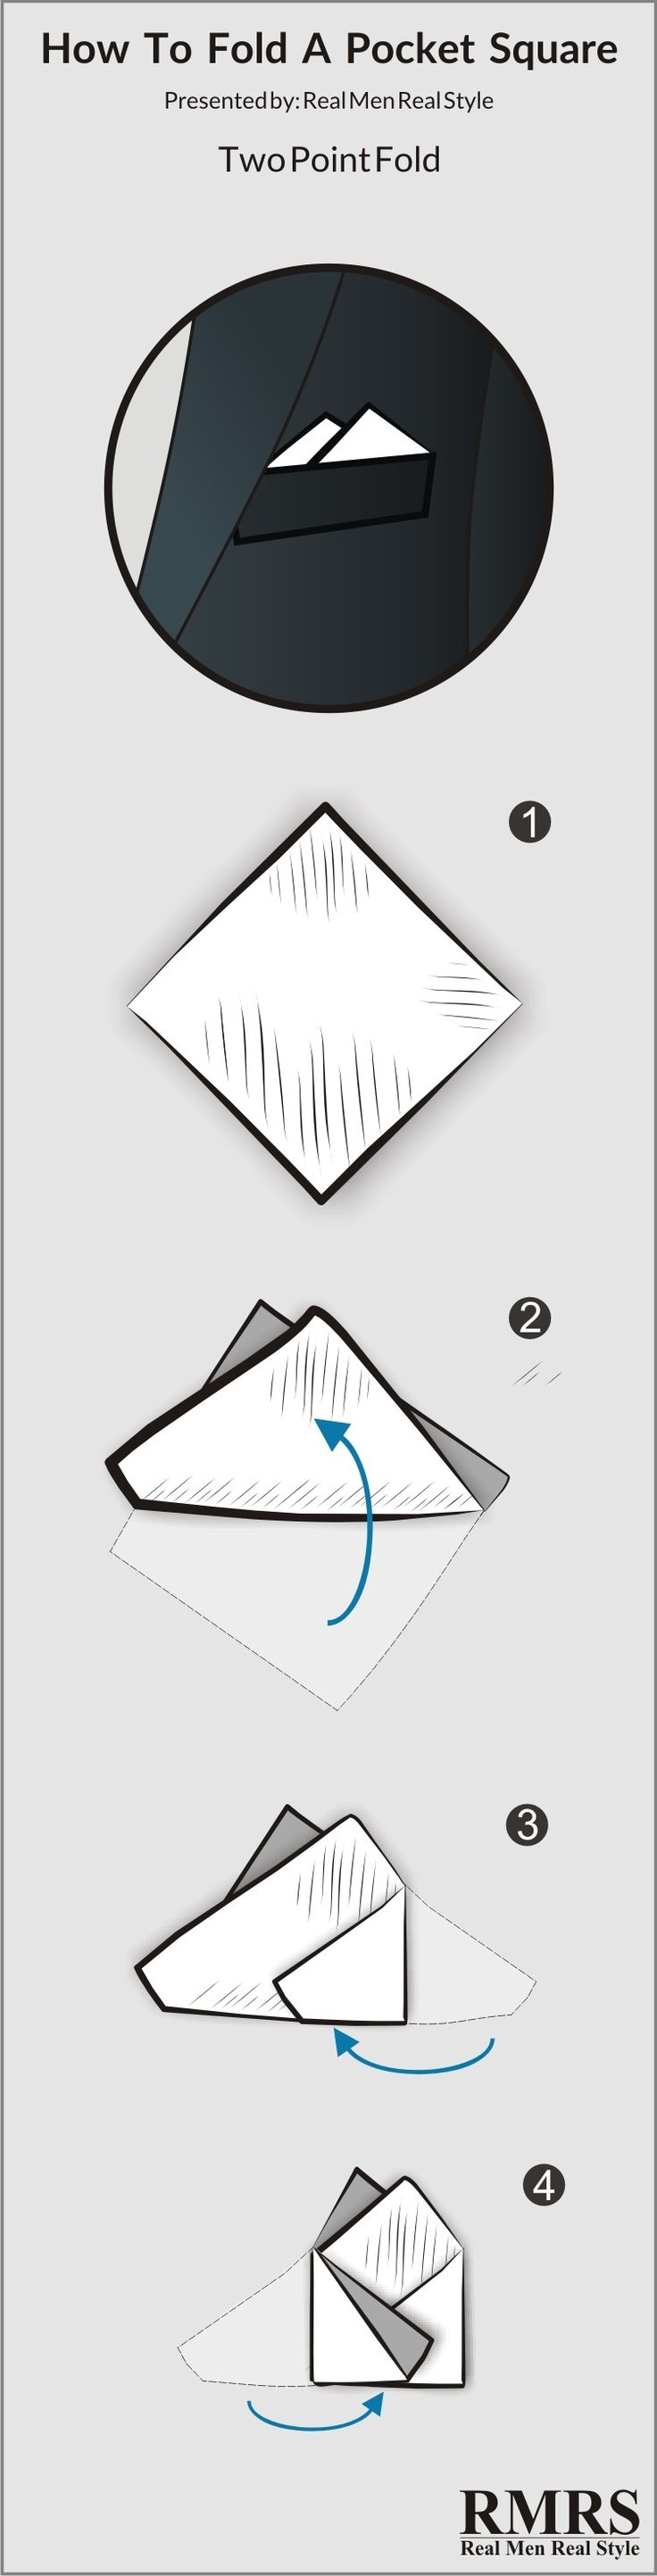 Two Point Pocket Square Fold Infographic